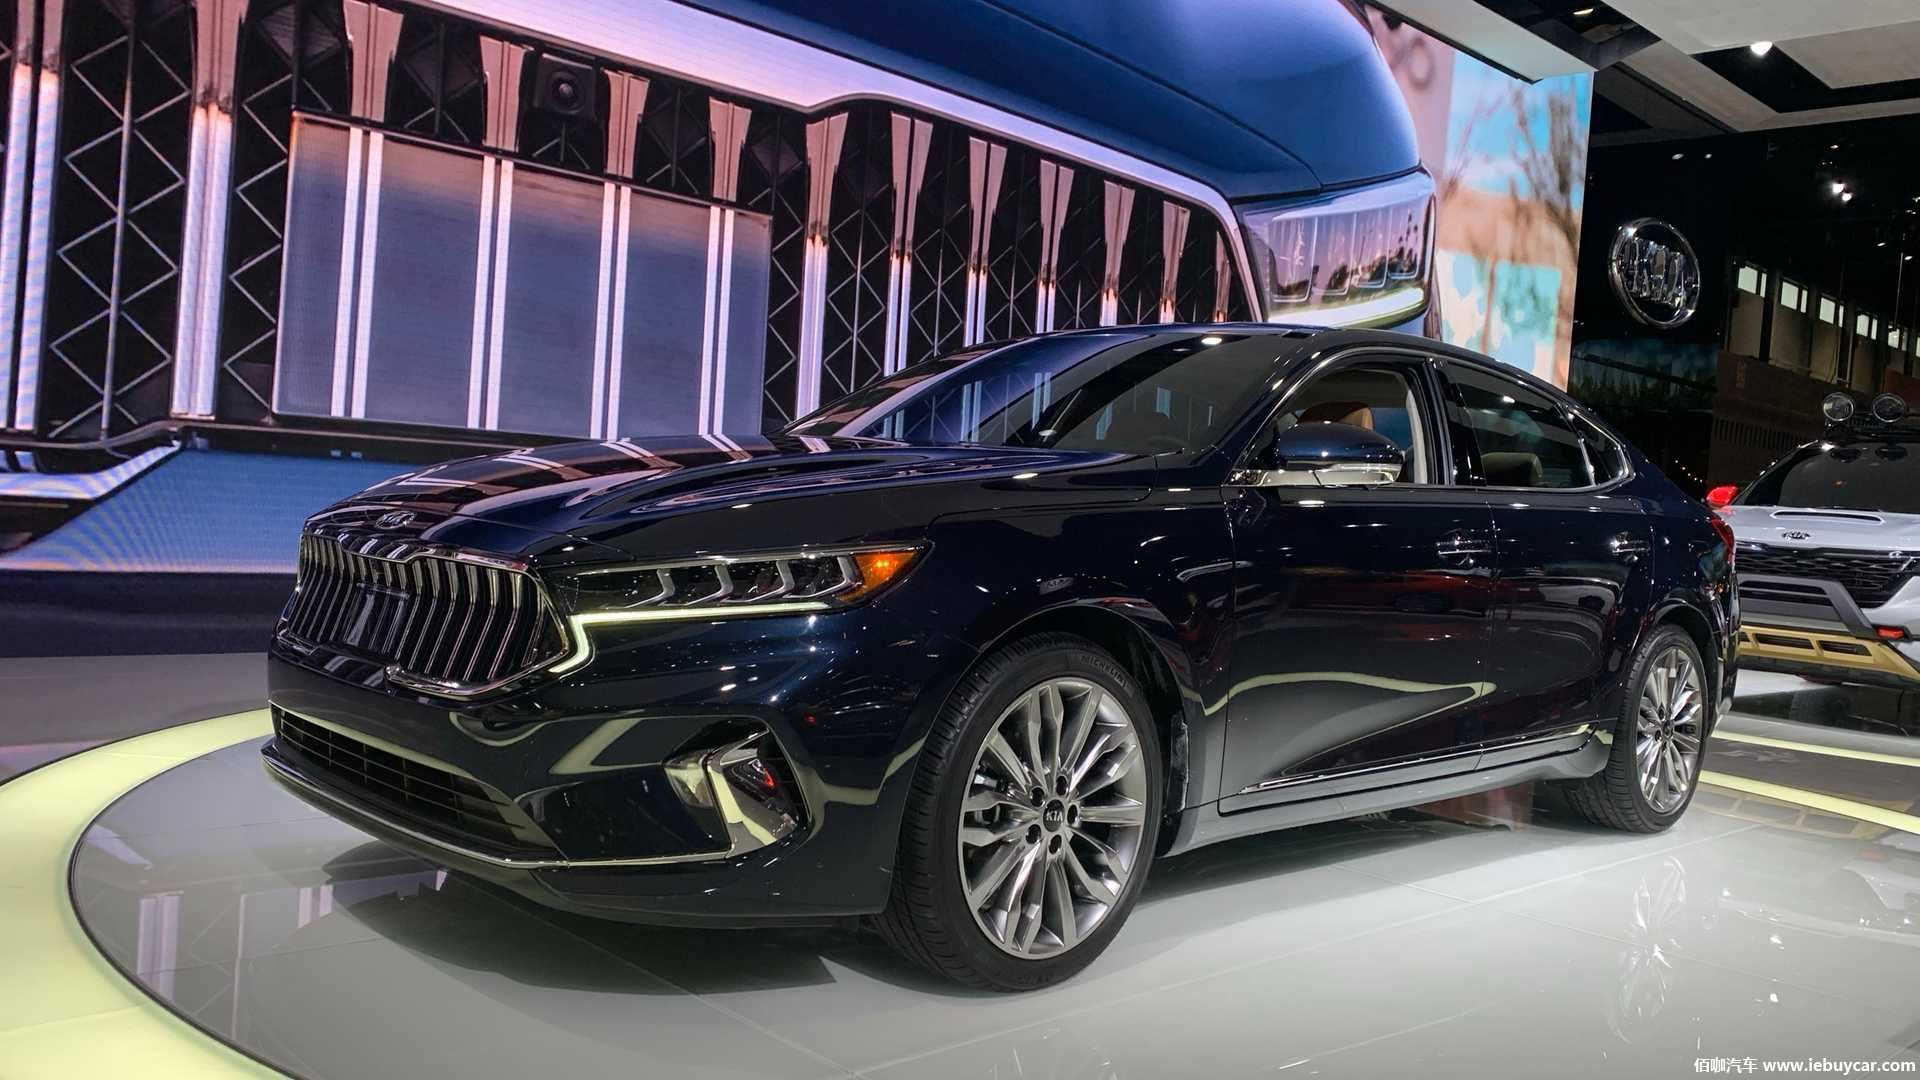 2020-kia-cadenza-at-chicago-auto-show (1).jpg